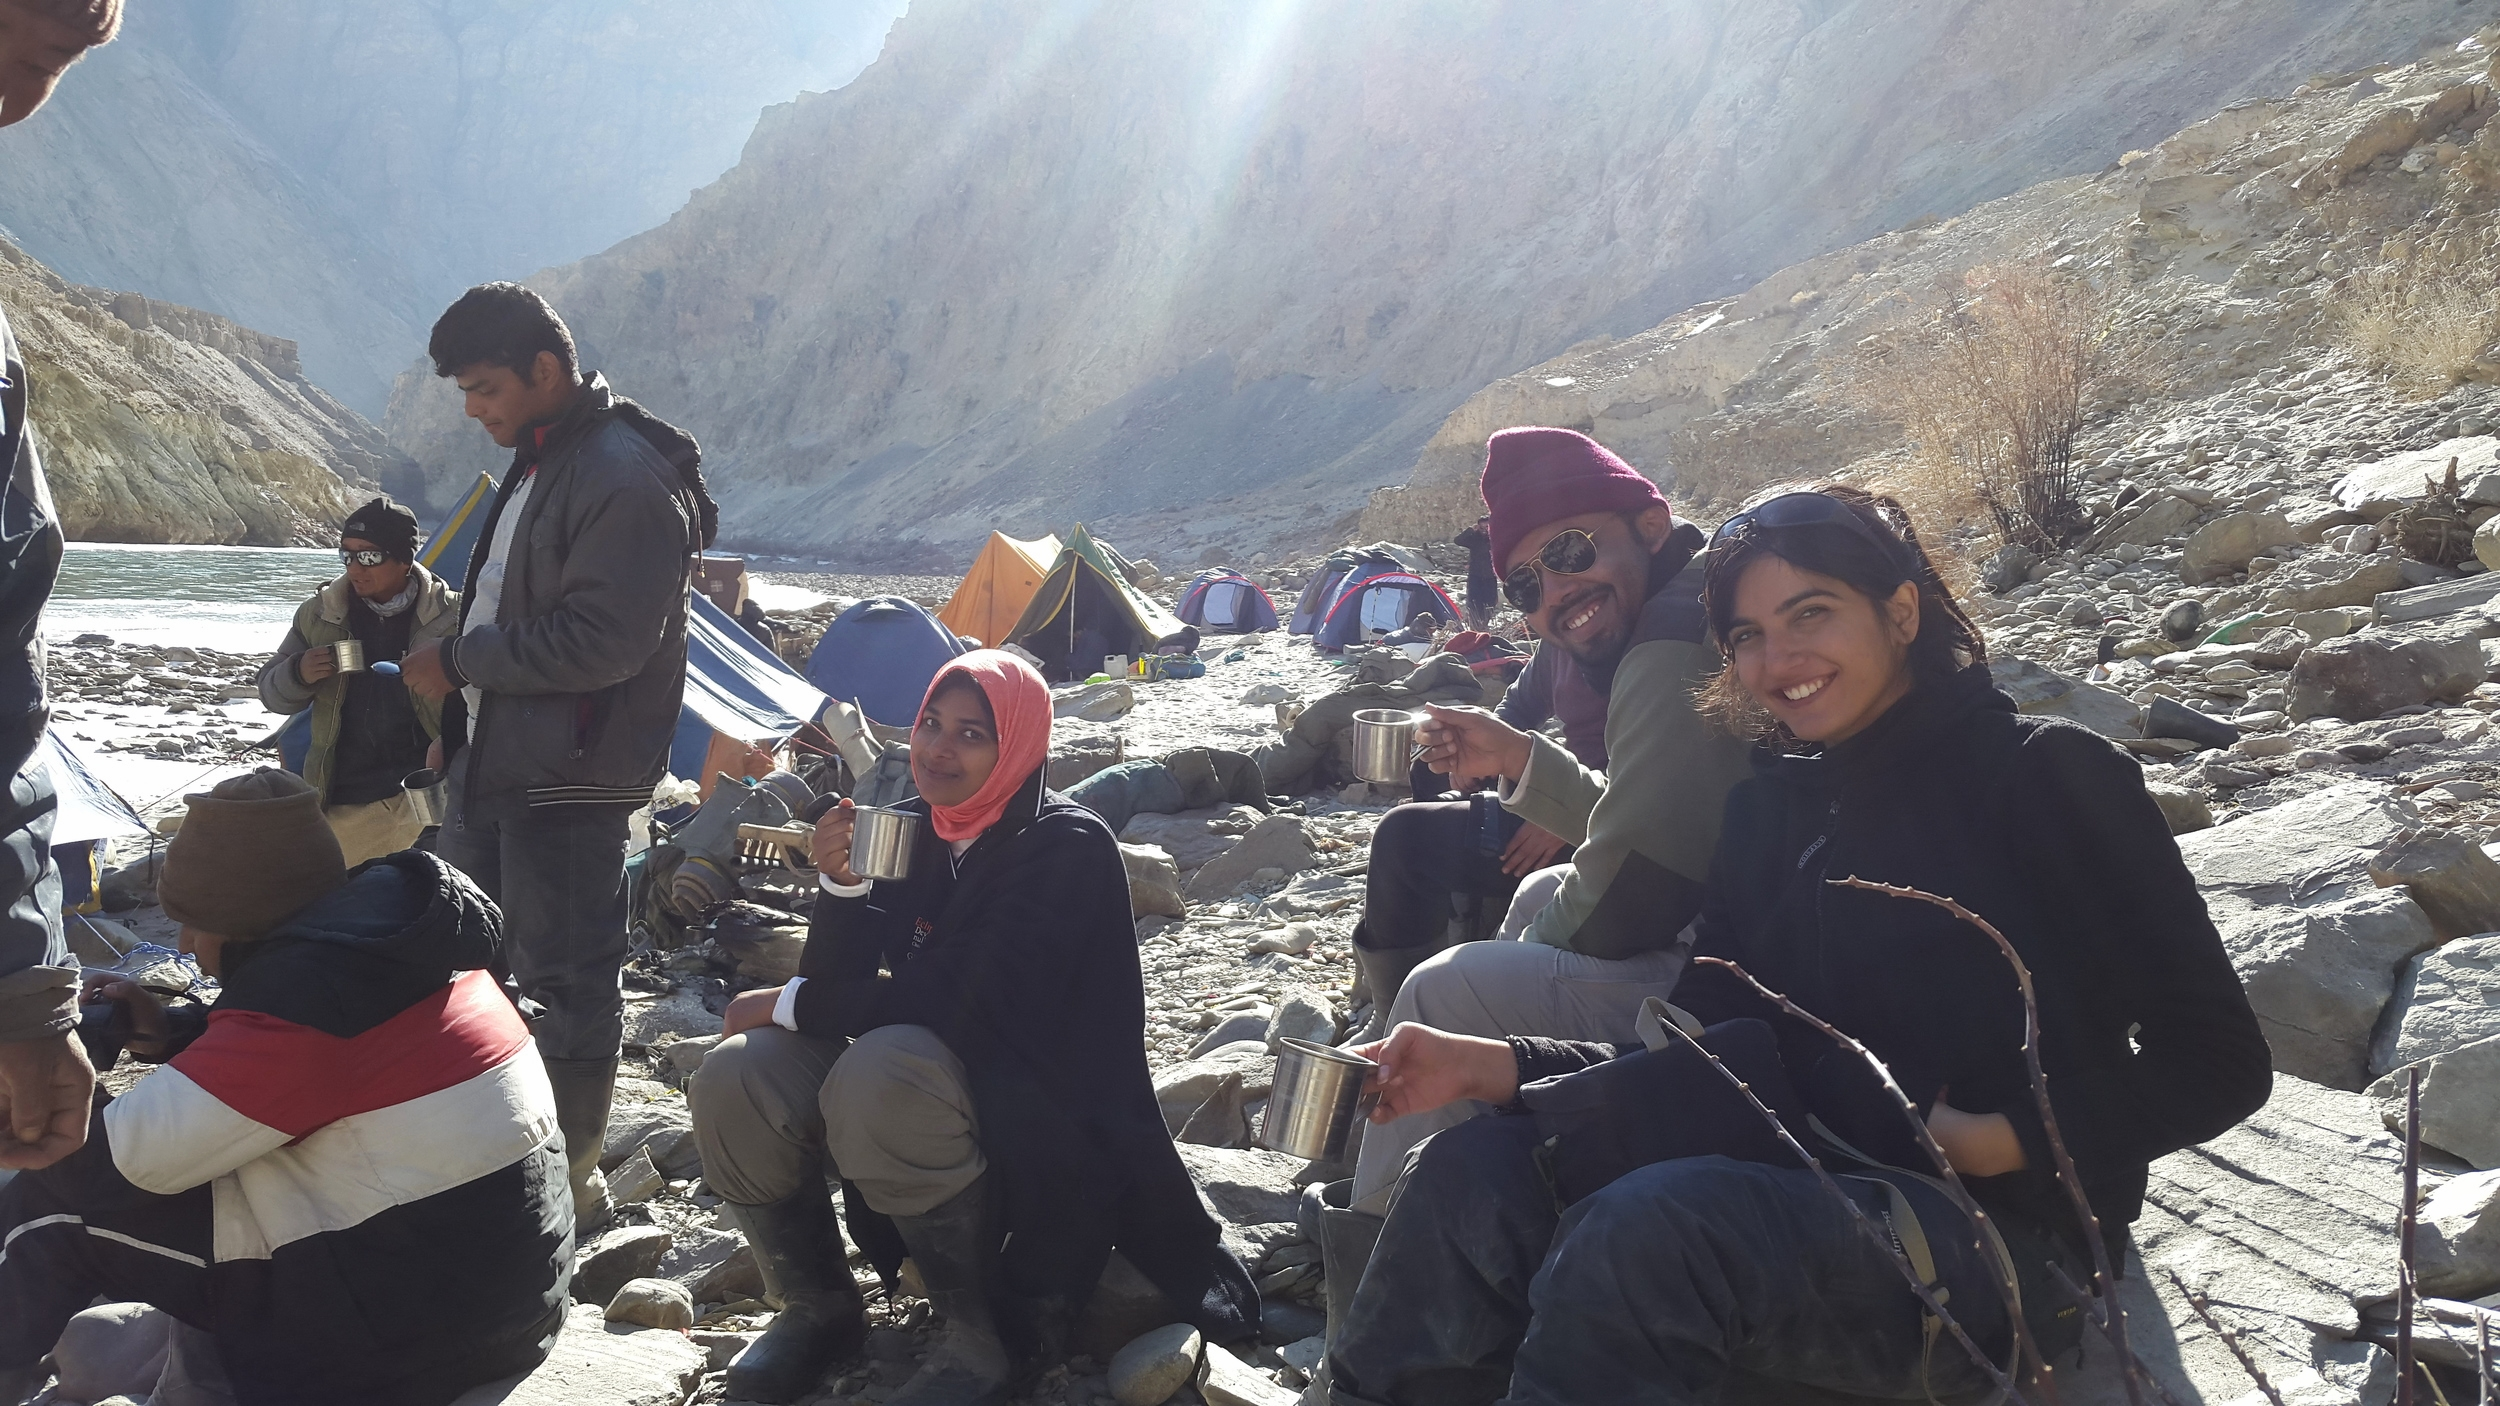 A steaming cup of Chai at the campsite nearing our chadar trek campsite. Life's best pleasures.